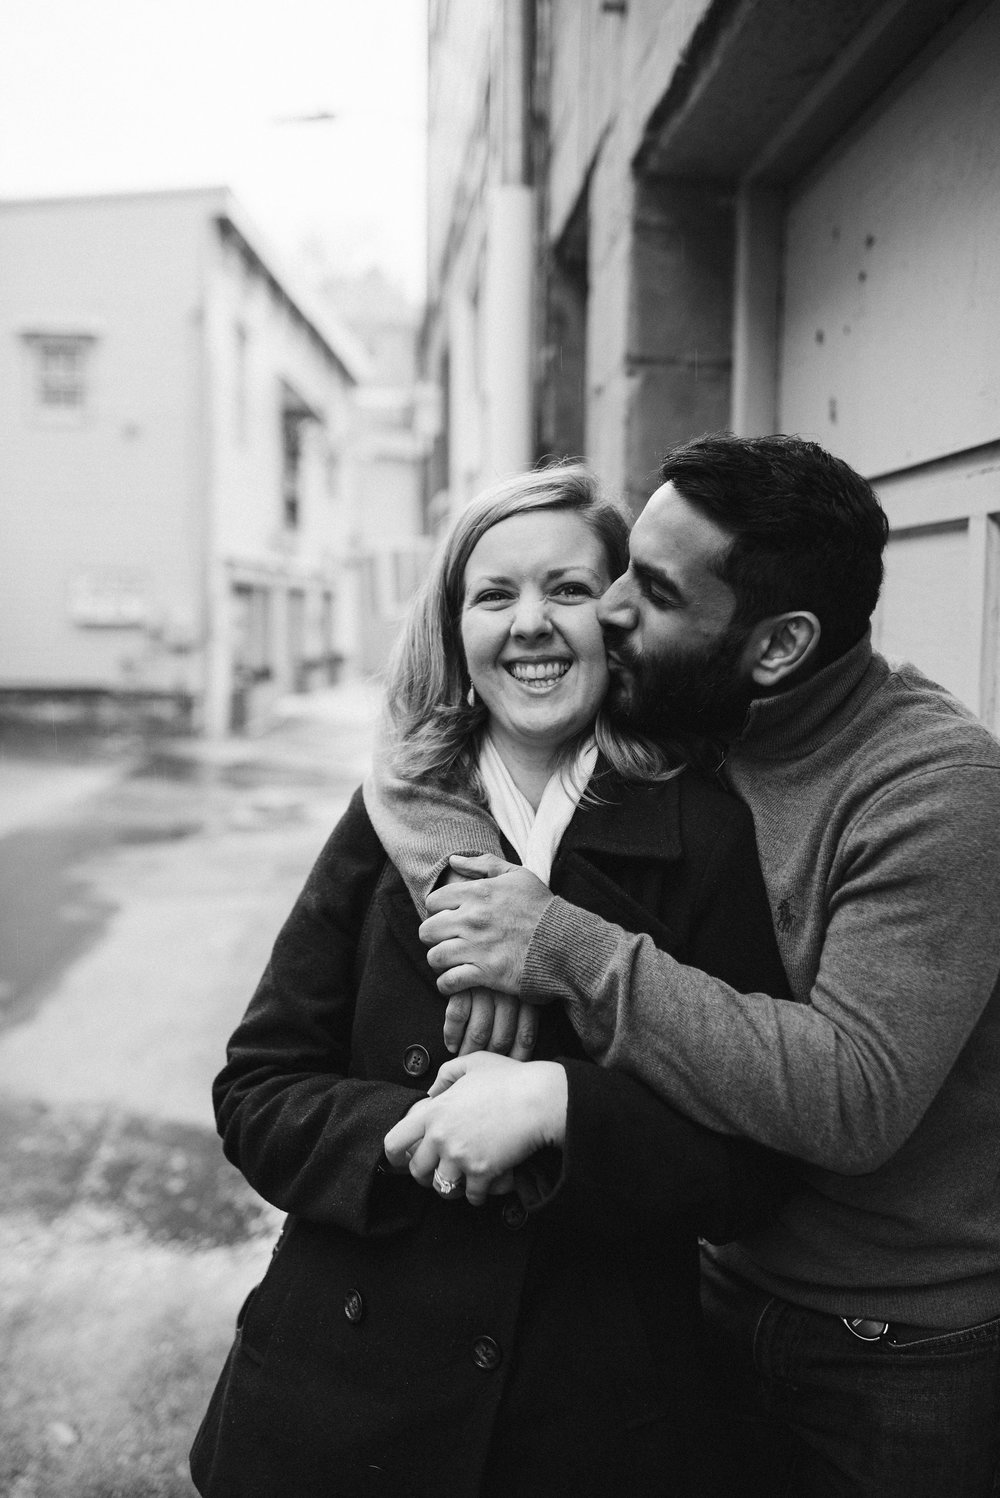 Engagement Photos, Rainy, Ellicott City, Maryland Wedding Photographer, Winter, Overhills Mansion, Indian American, Historical, Classic, Outdoor, Bride and Groom Smiling, Kiss, Black and White Photo